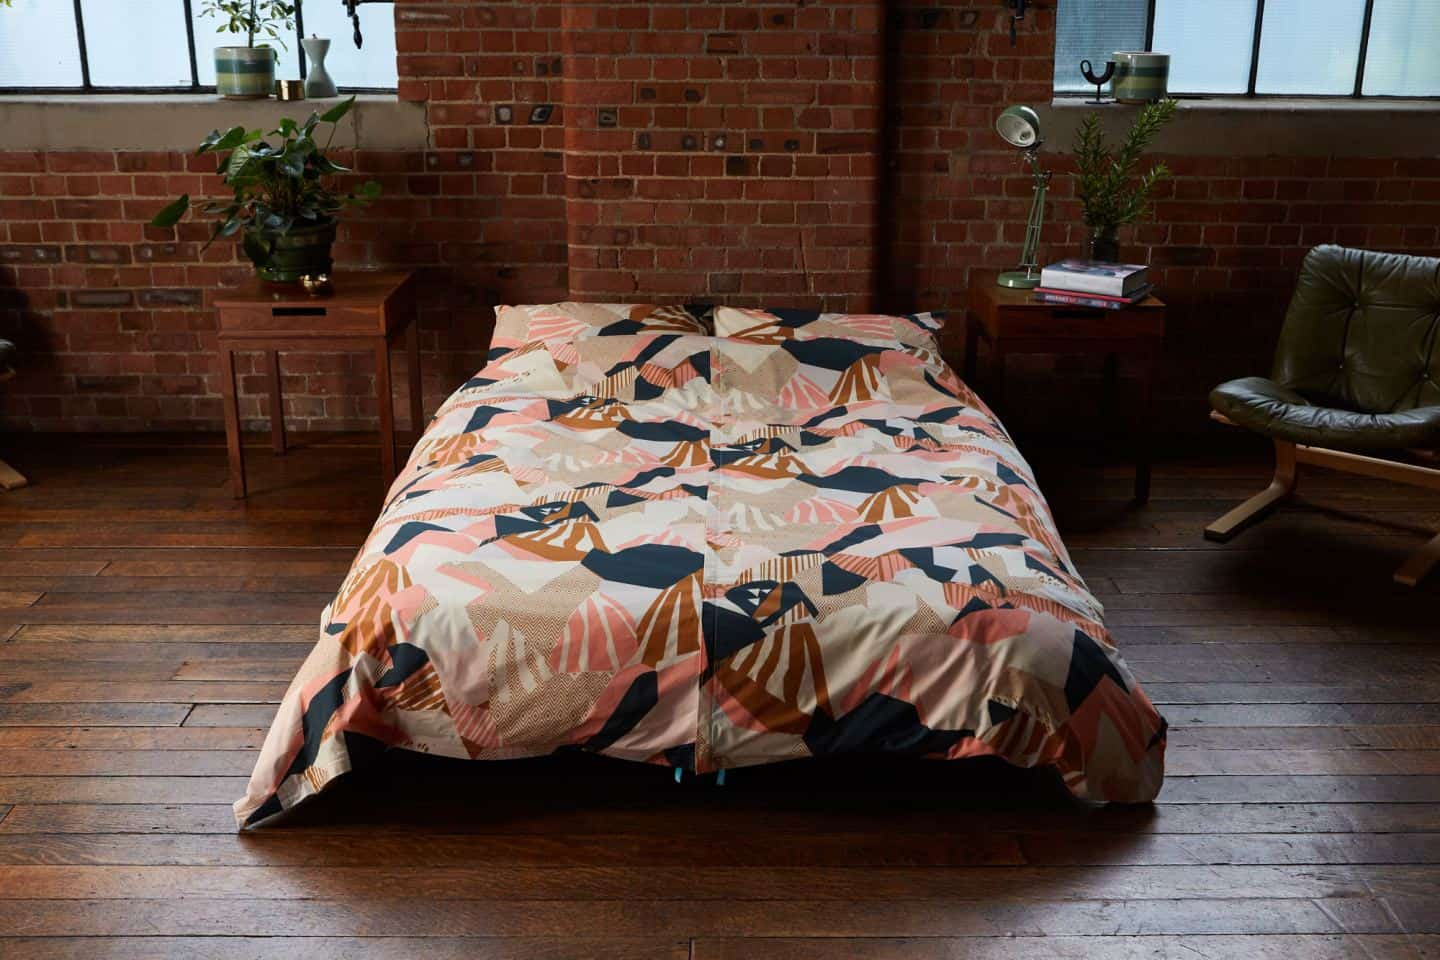 Koa revolutionary duvet cover shown in an industrial loft bedroom. The easy way to change a duvet cover